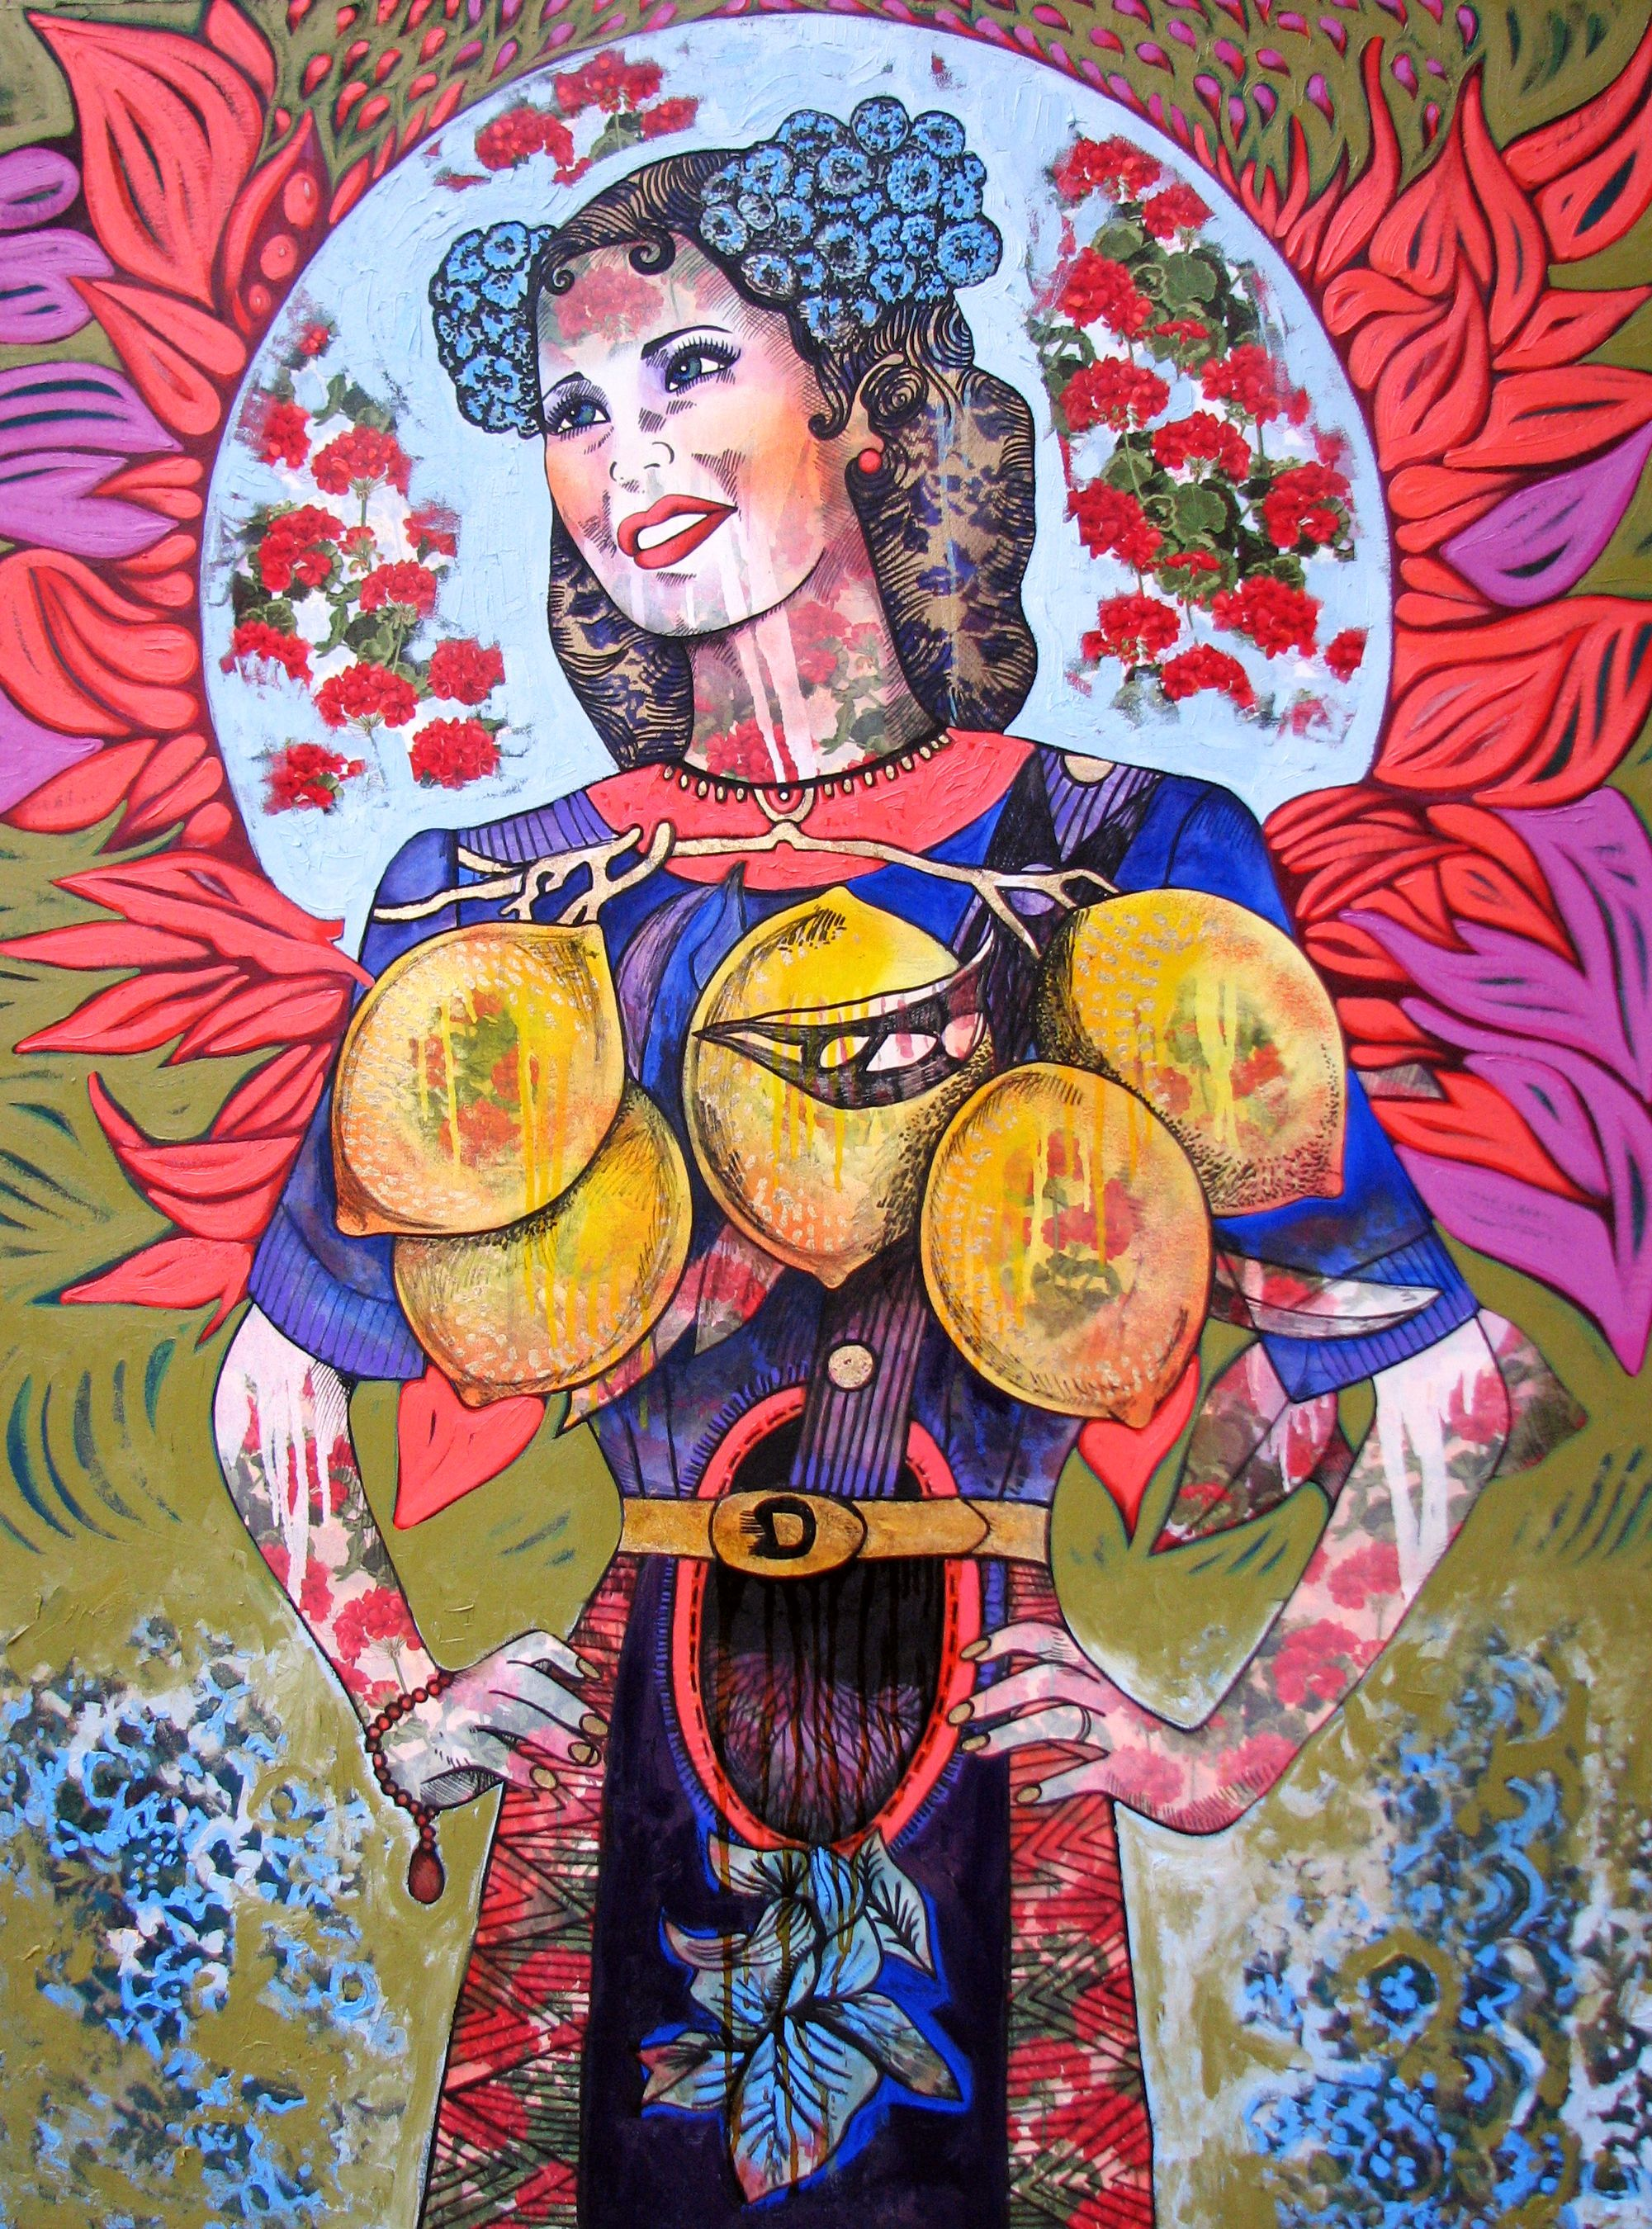 Hickey, S. 2013. The Happy Baroness (with Californian lemons), 110 x 150cm, oil and mixed media on canvas